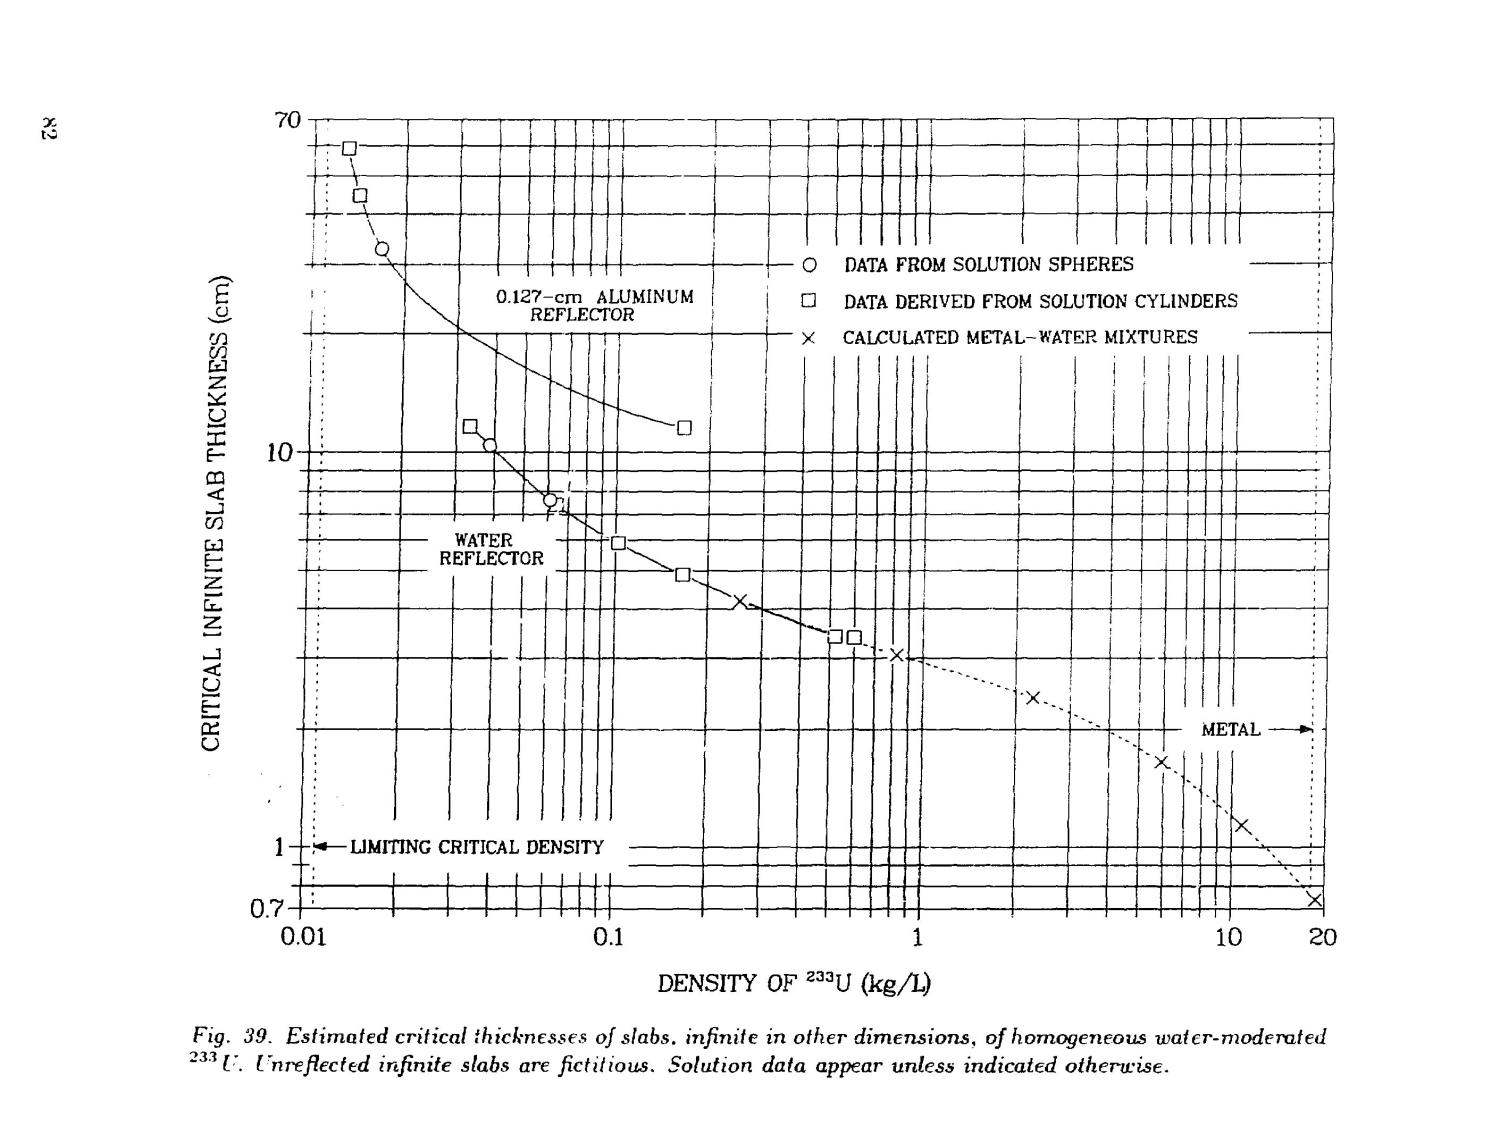 Critical dimensions of systems containing /sup 235/U, /sup 239/Pu, and /sup 233/U: 1986 Revision                                                                                                      [Sequence #]: 86 of 205